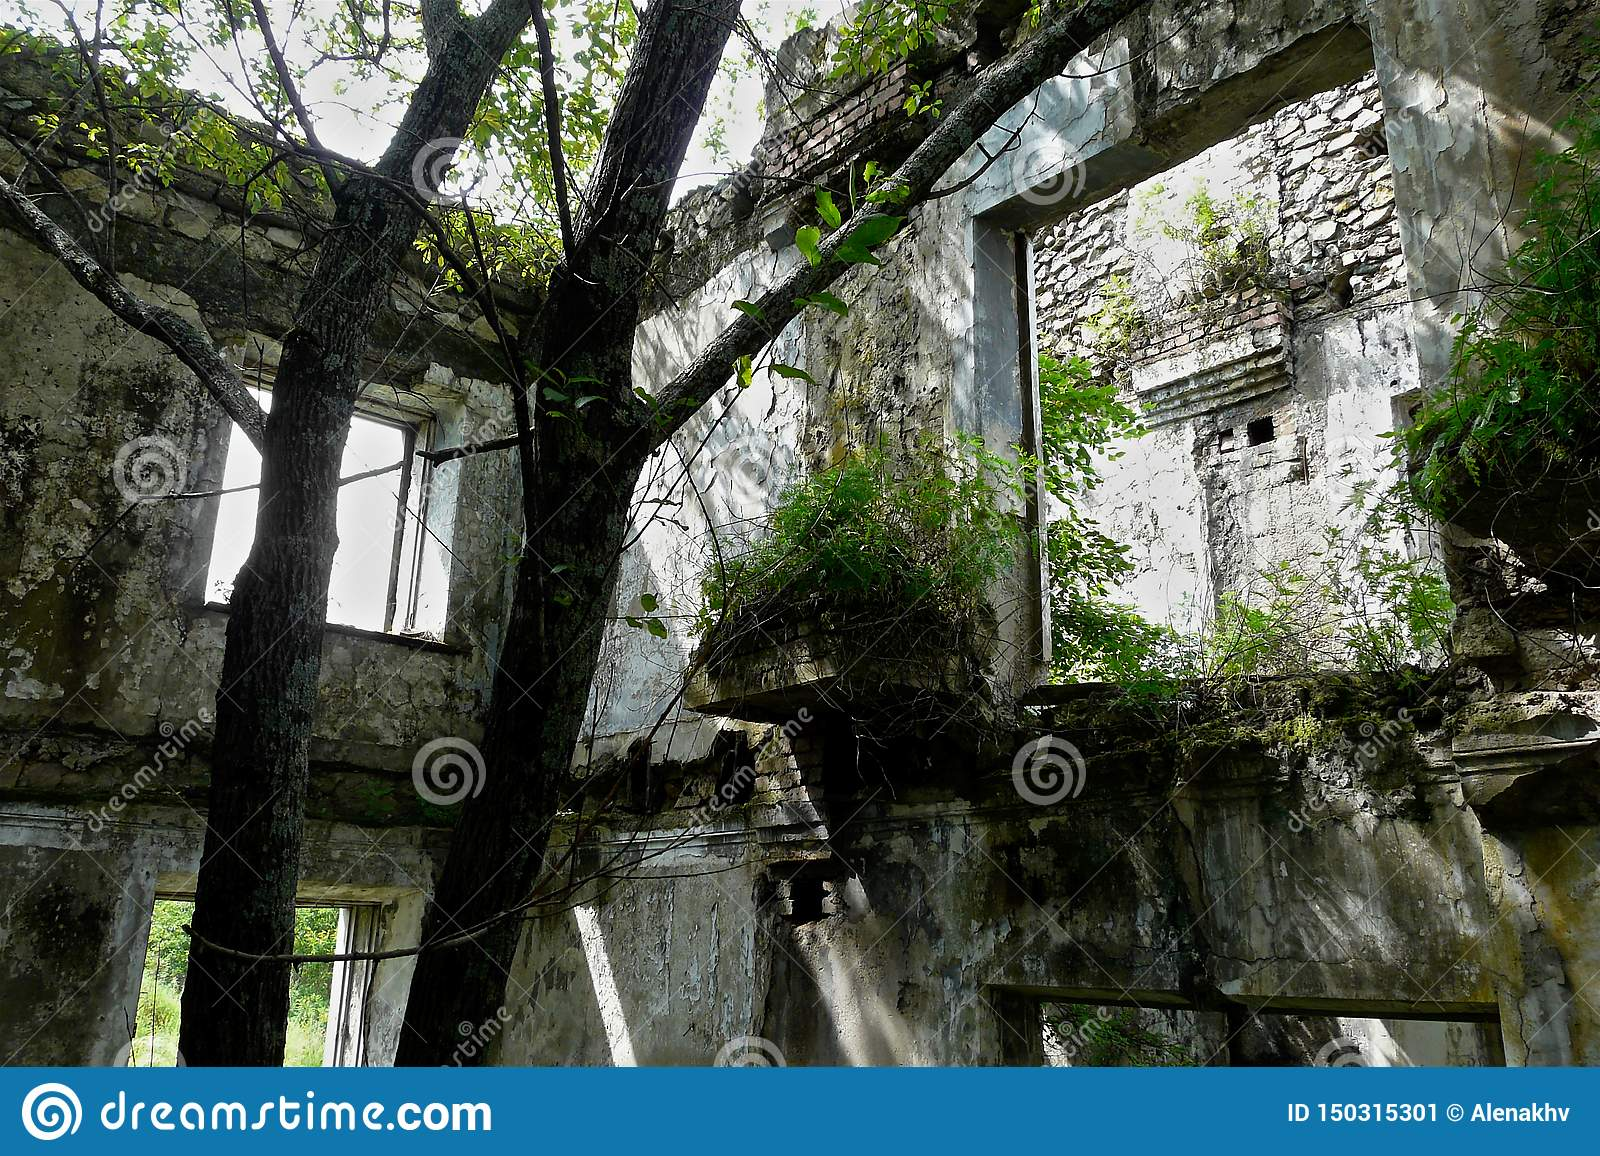 Ree and bushes sprouted inside an abandoned dilapidated building